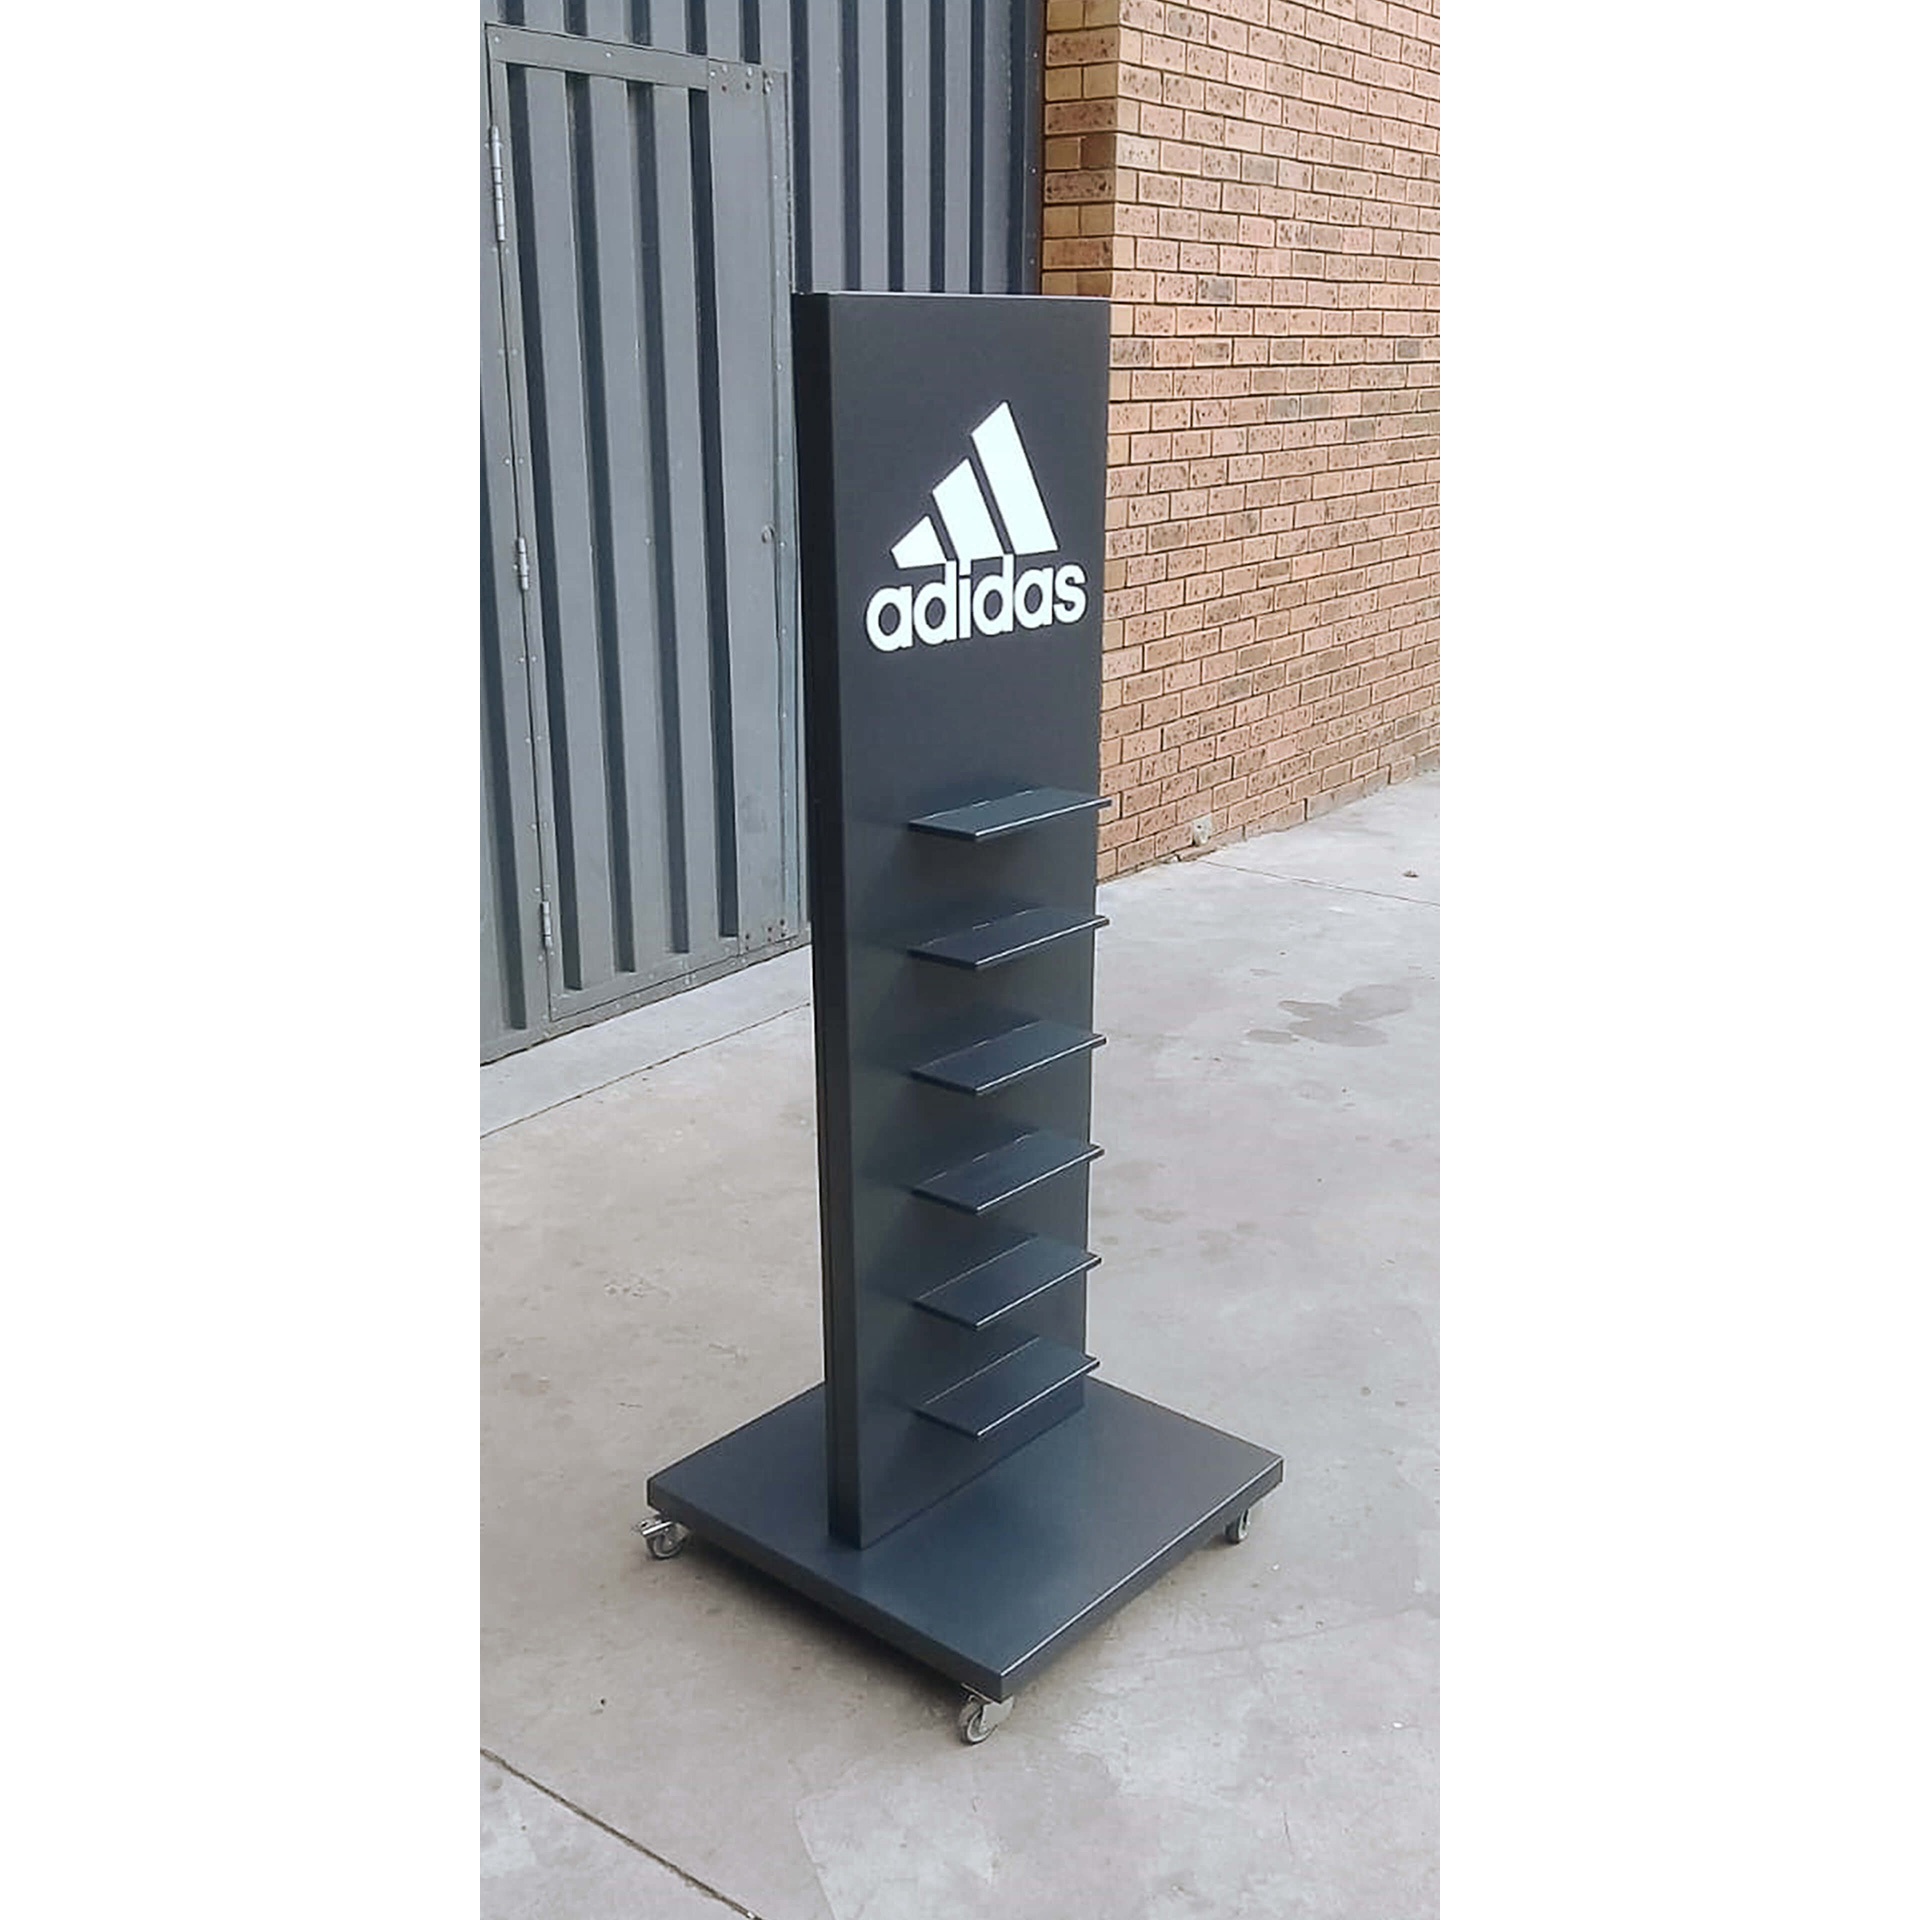 adidas-Footware_Stand_Finishing-small